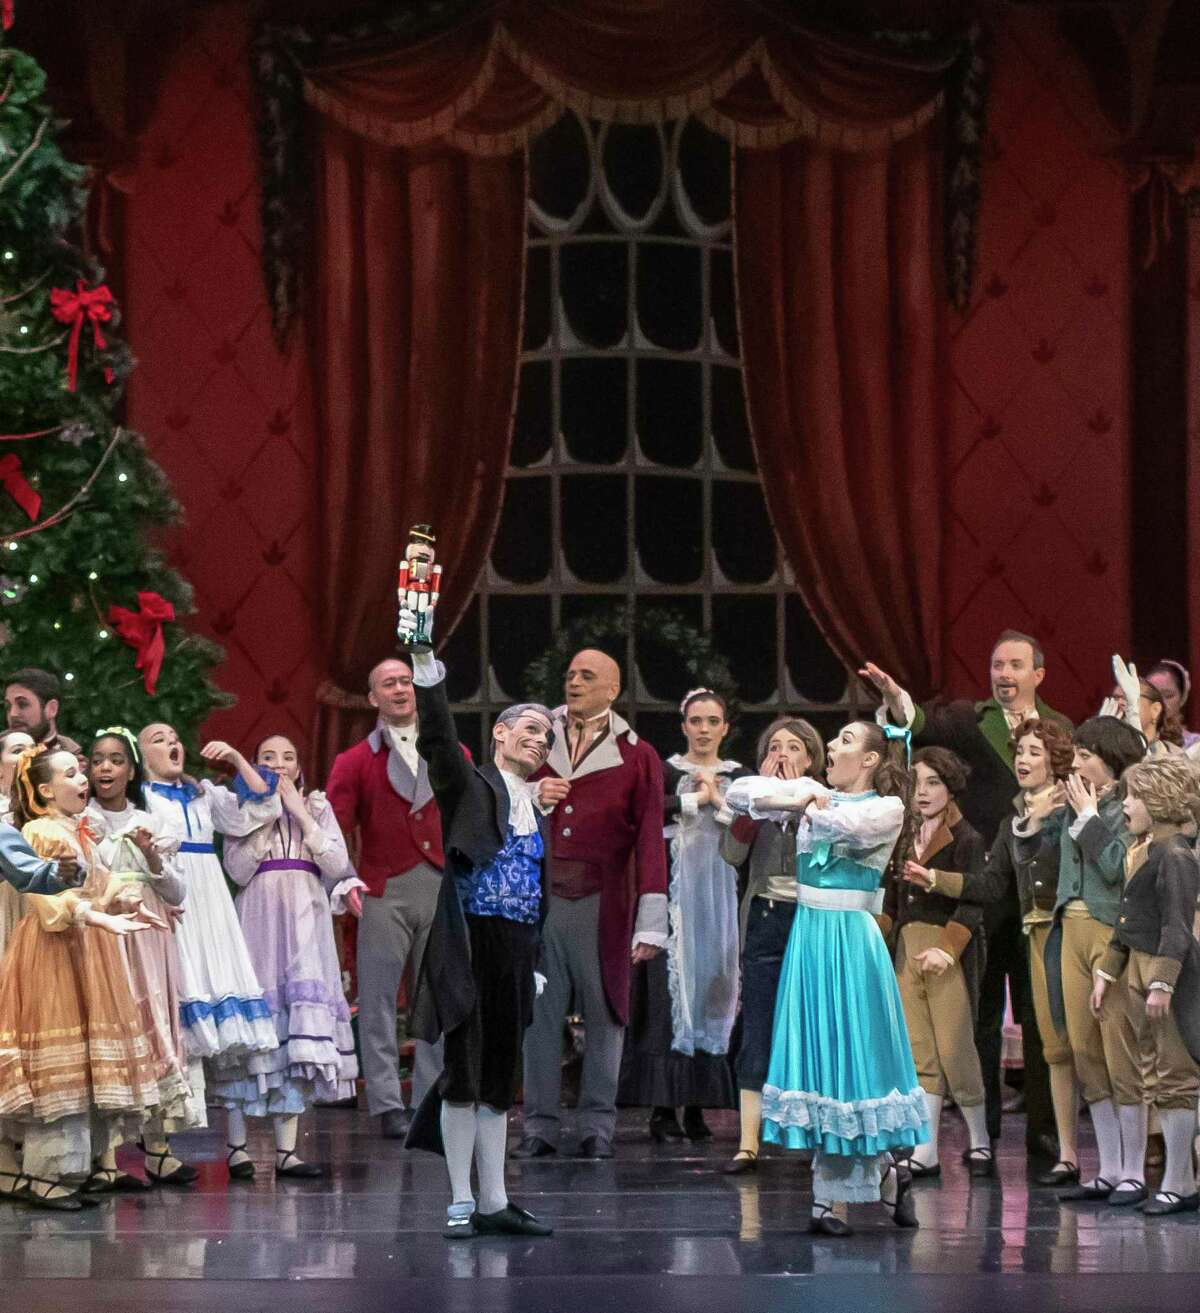 The Connecticut Ballet's production of The Nutcracker will be staged in Stamford.